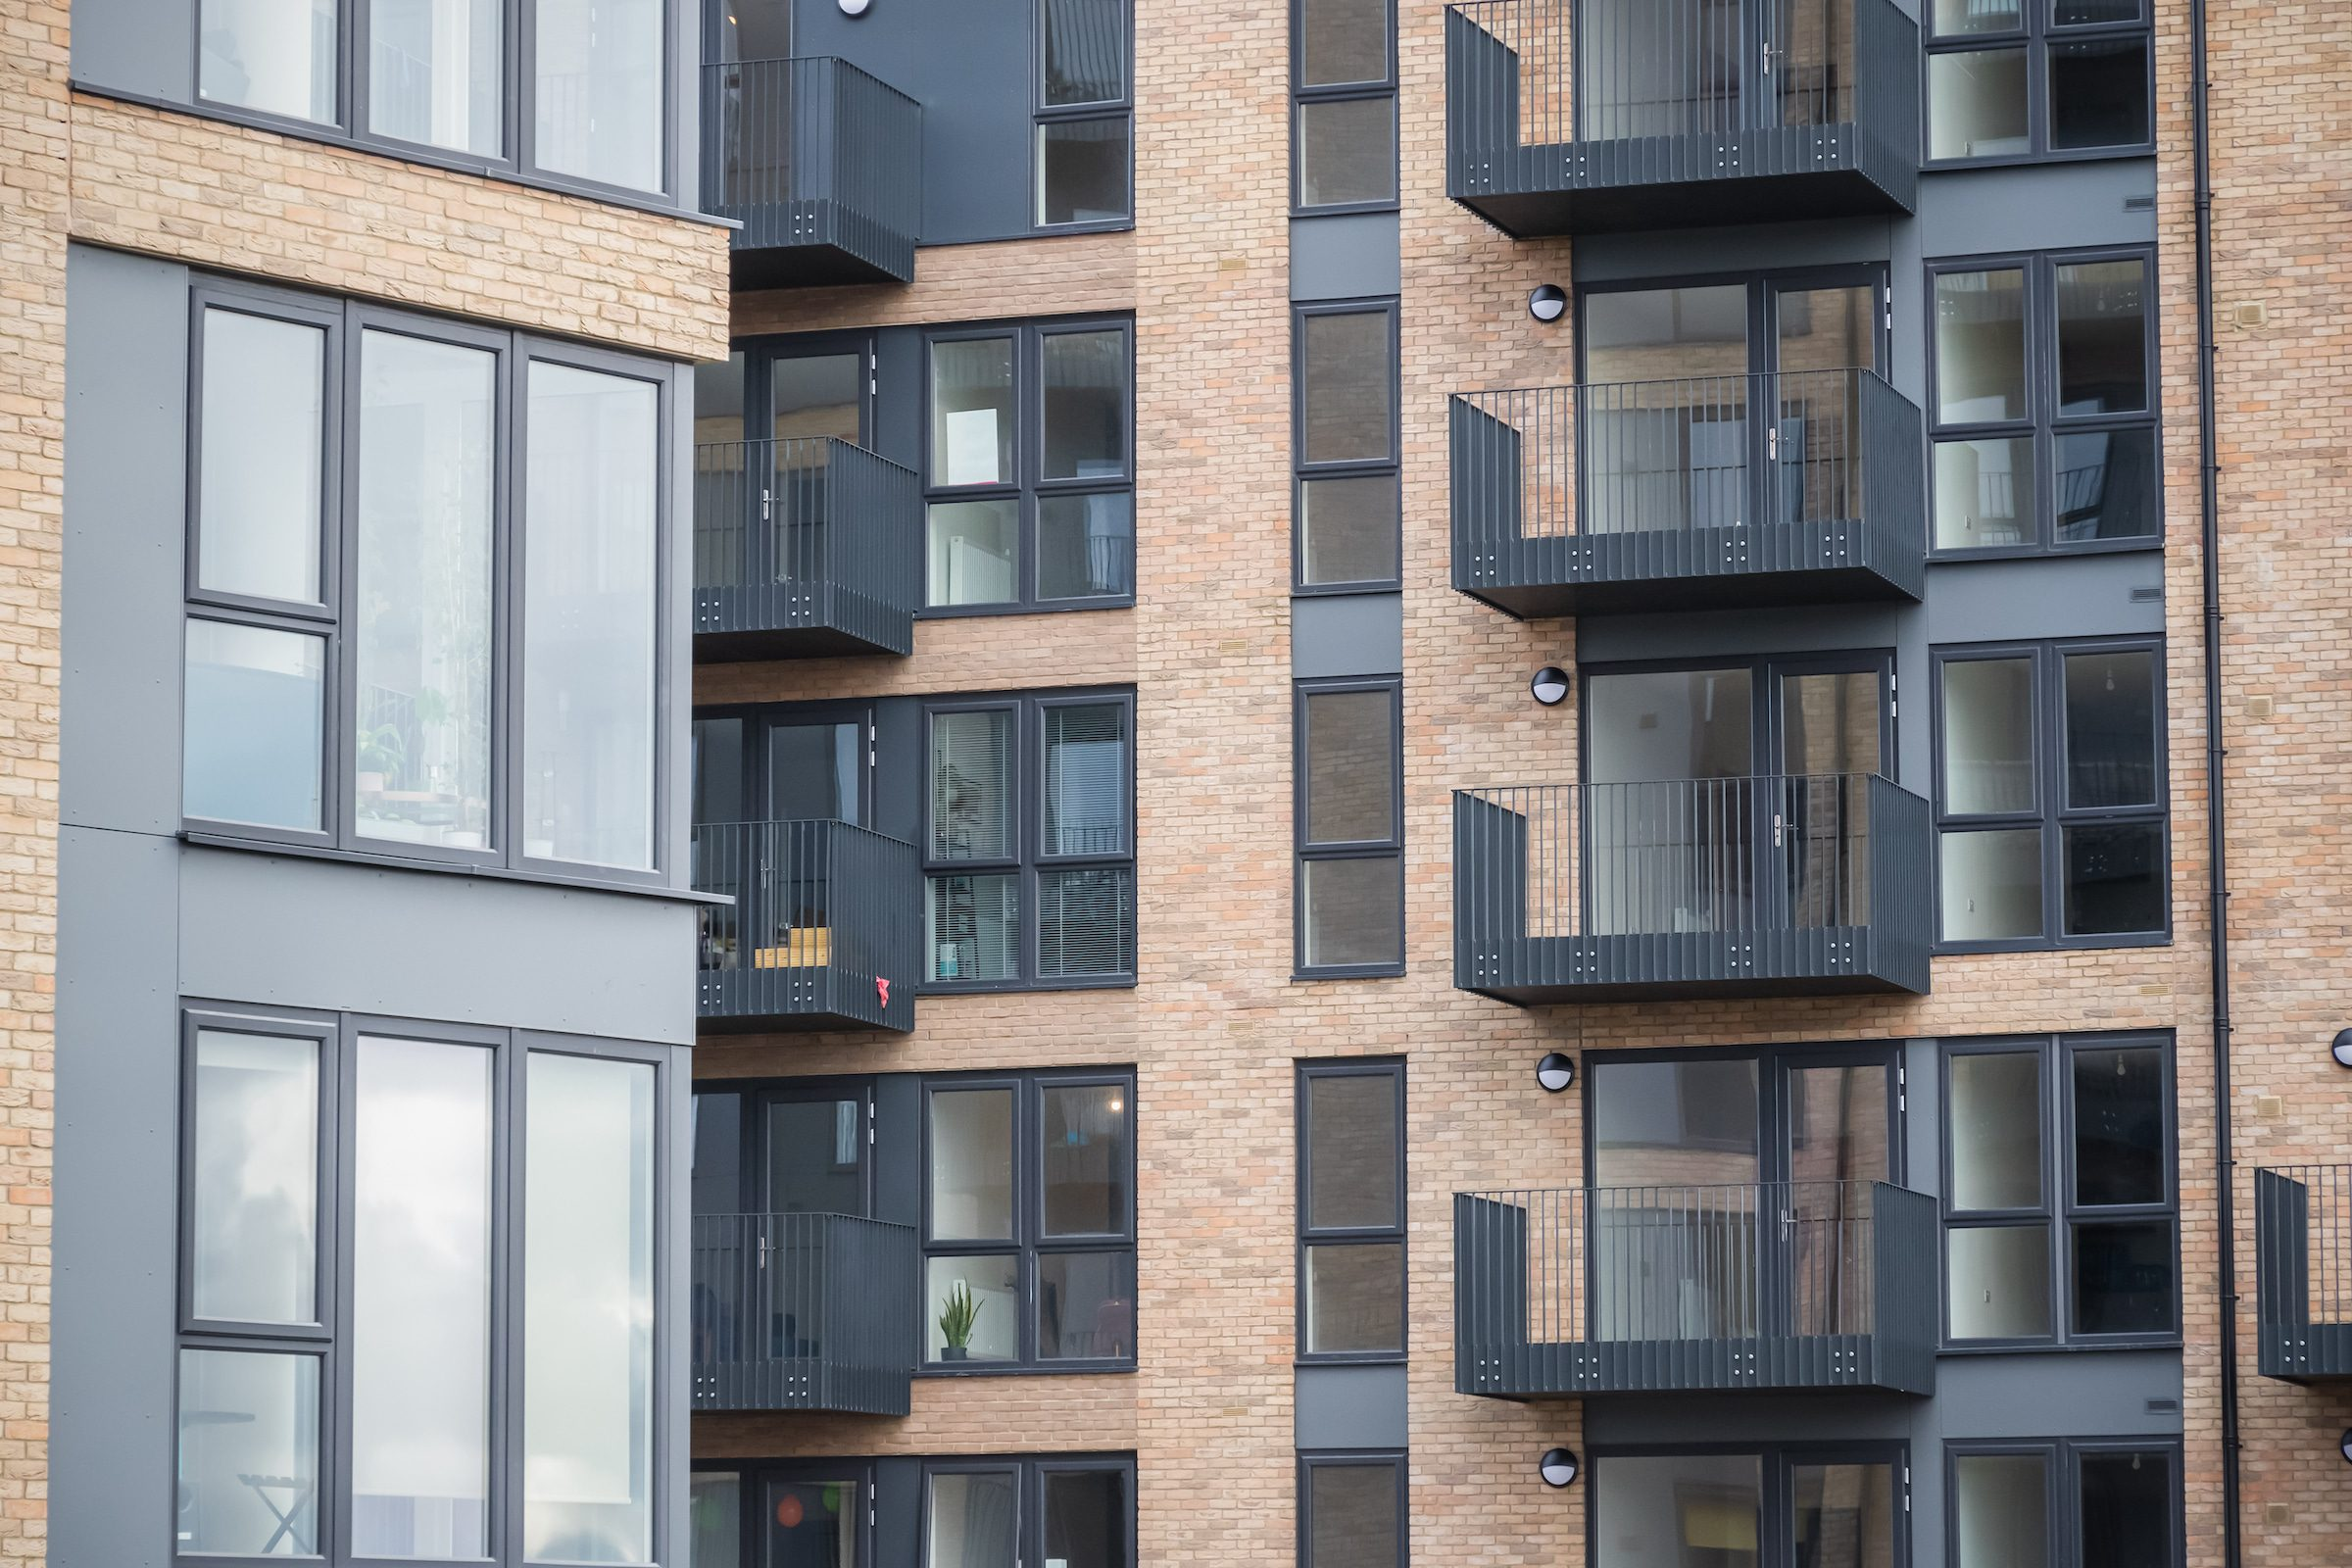 exlabesa building systems project showing exlabesa windows and doors in new flats